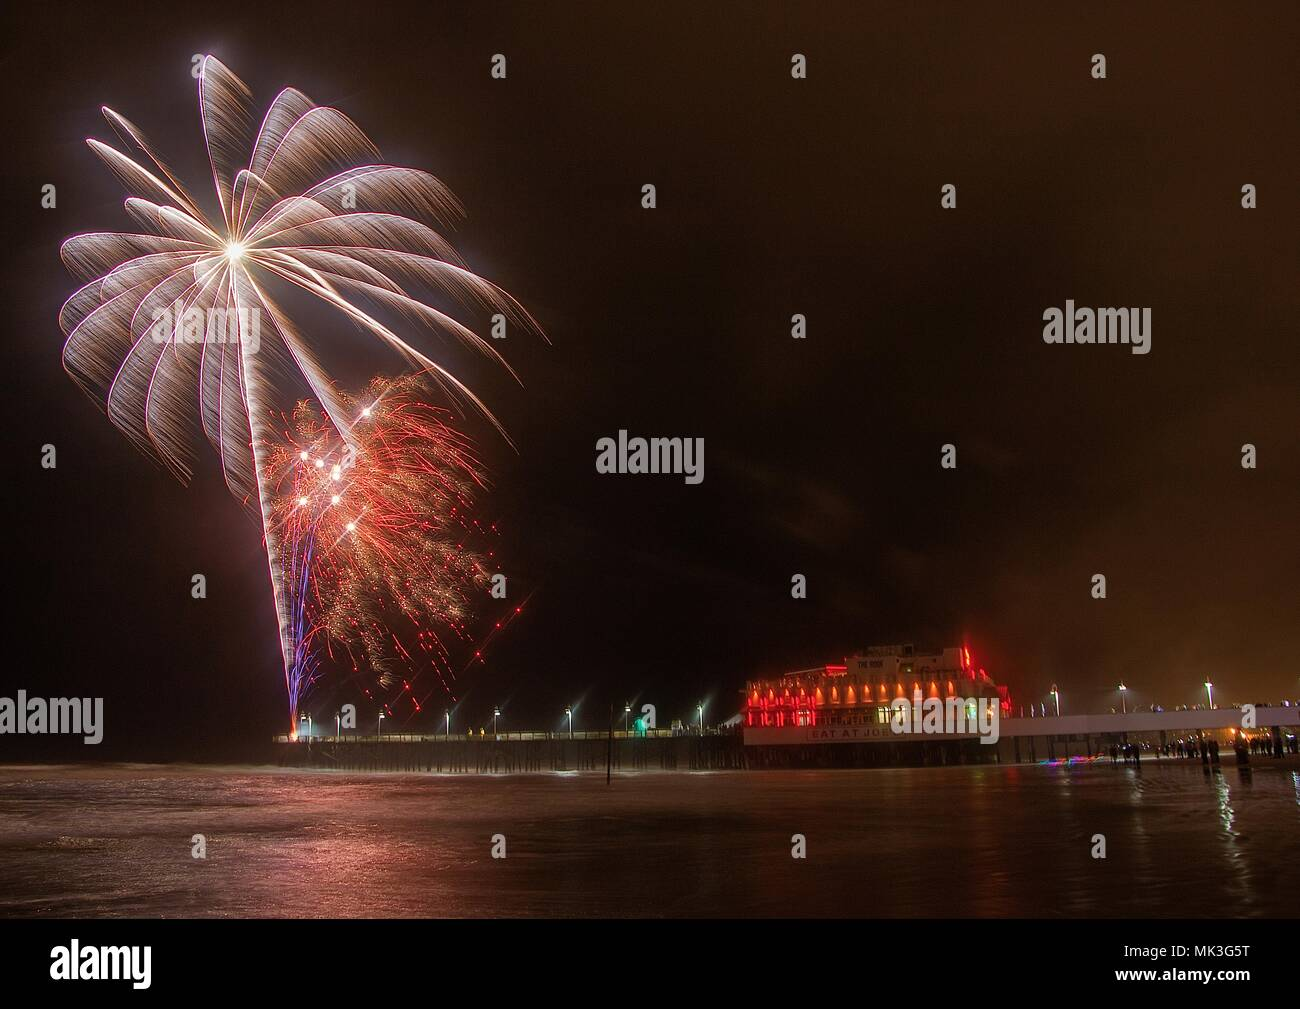 Fireworks Being Shot From The Pier At Daytona Beach In Florida Stock Photo Alamy